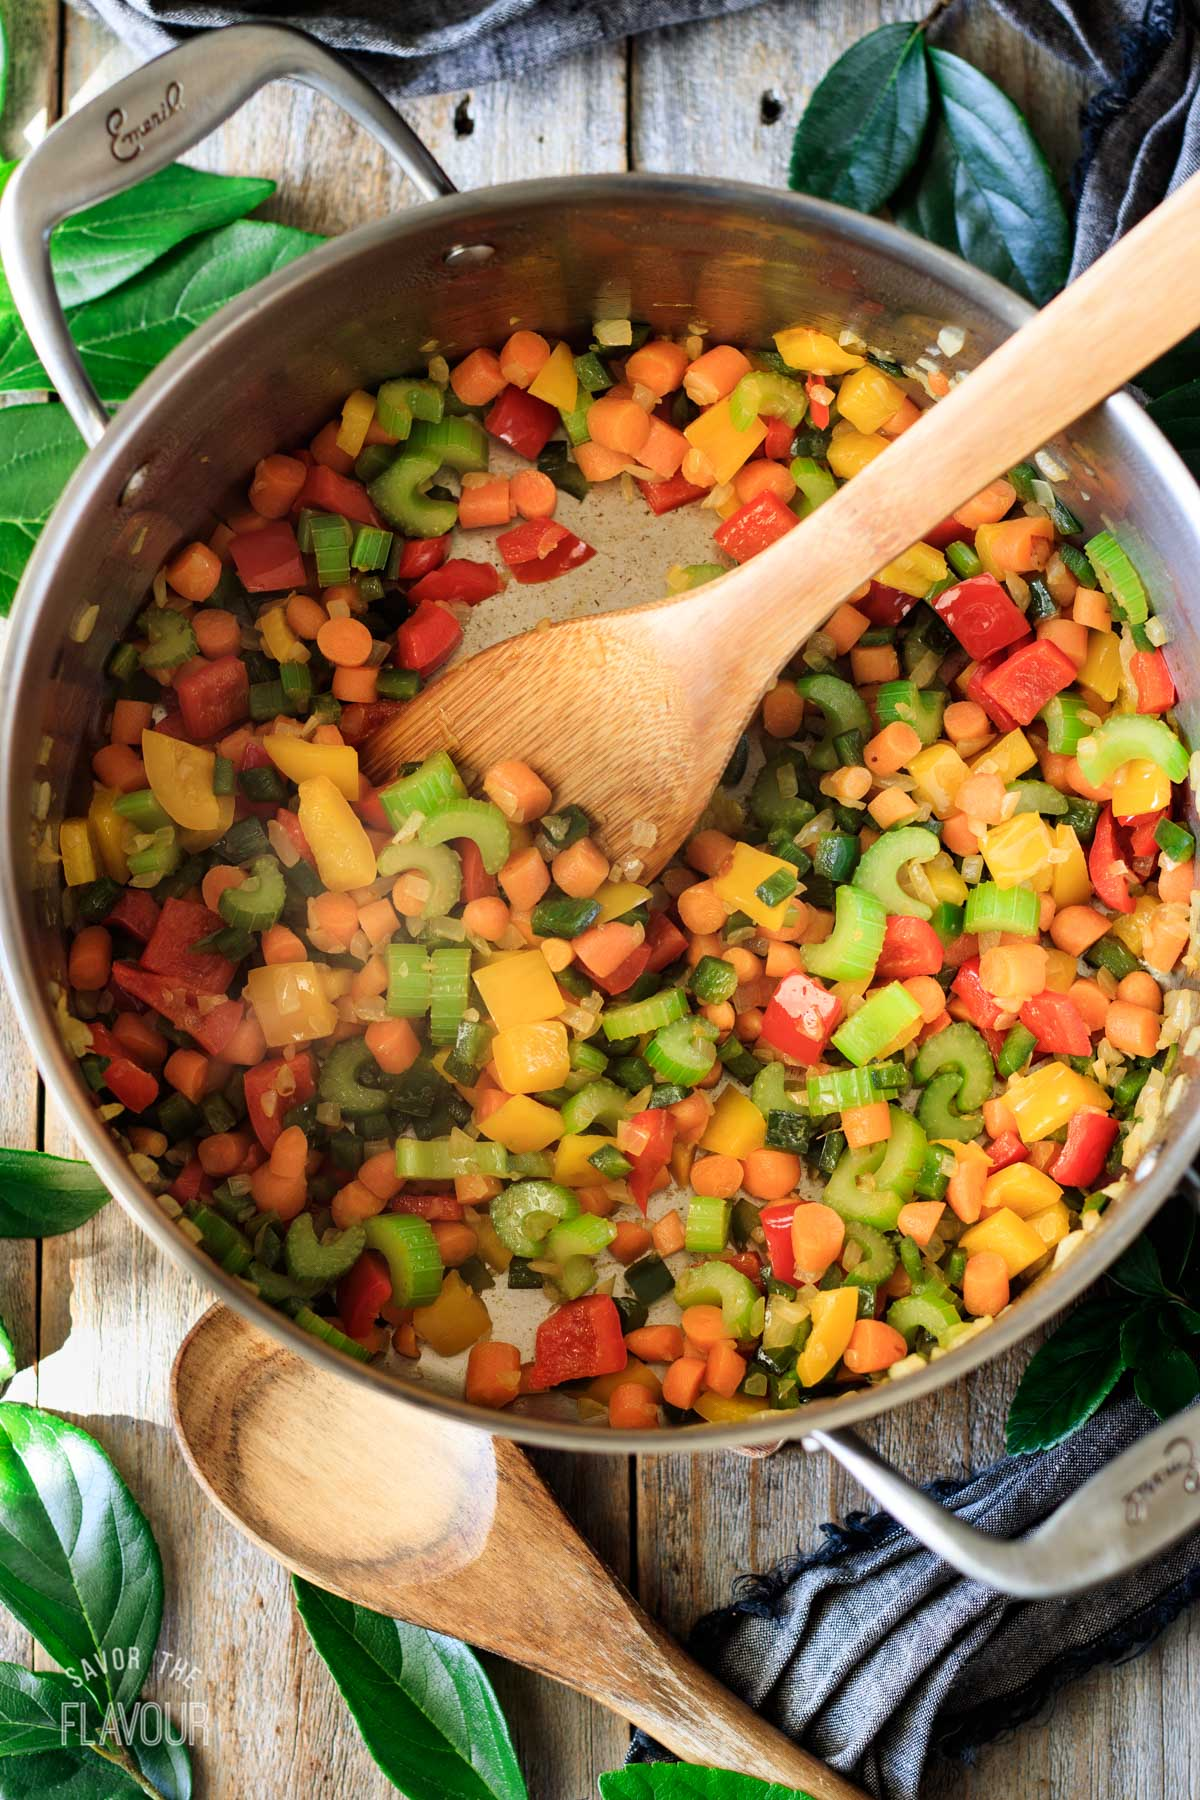 sauteed veggies in a large pot with a wooden spoon